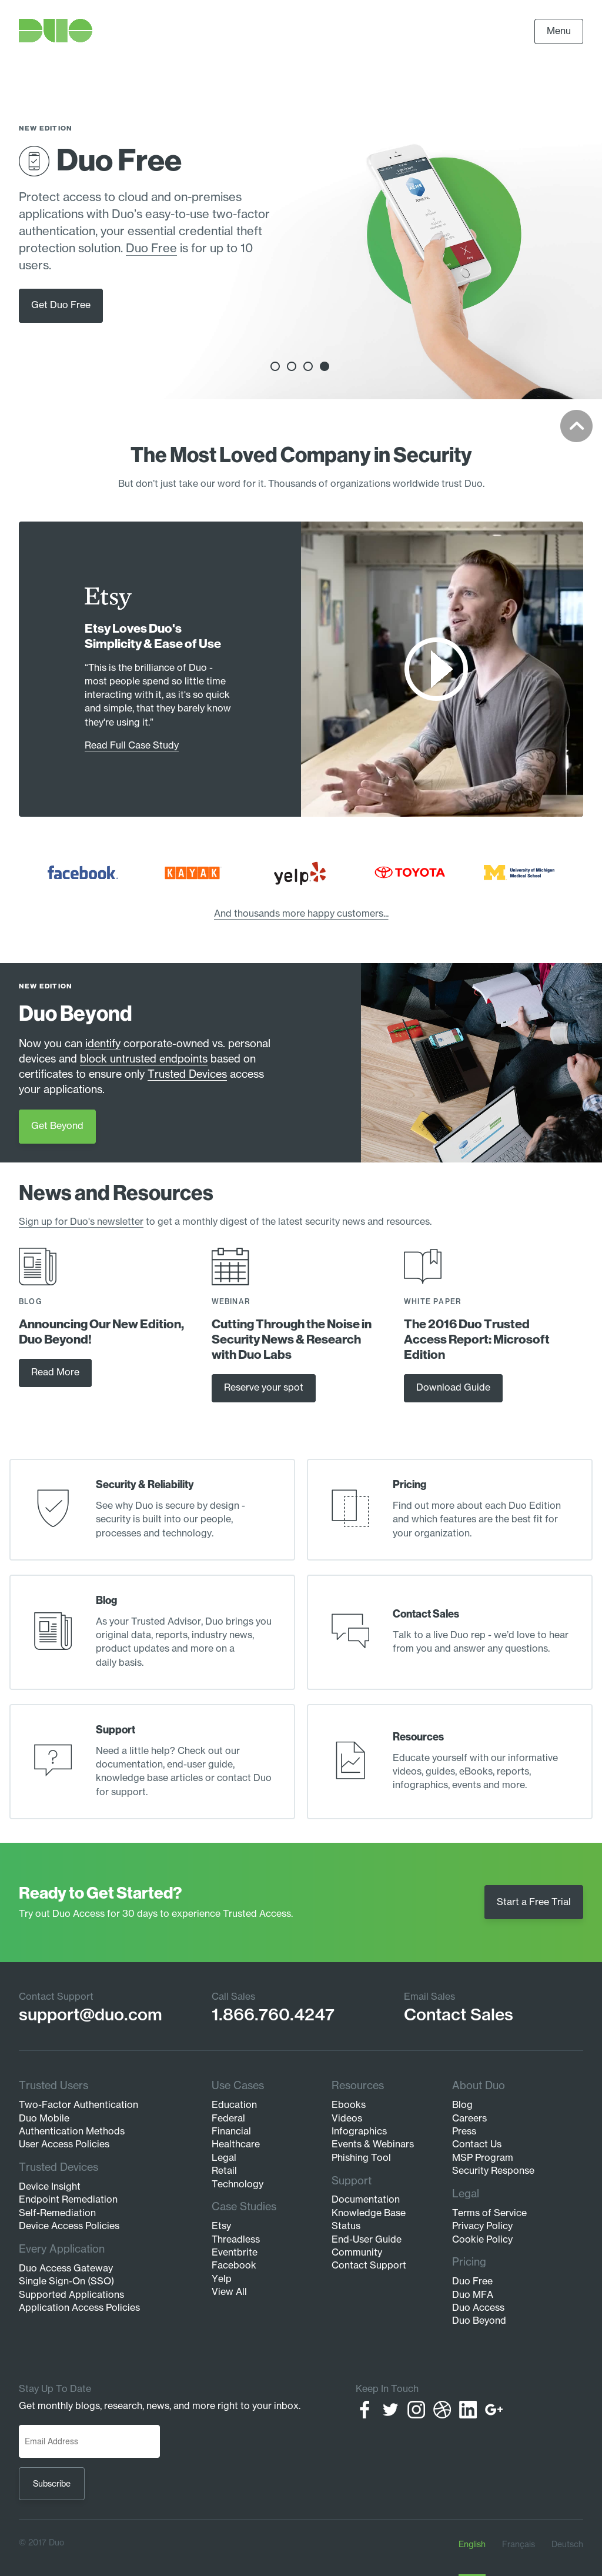 Duo Competitors, Revenue and Employees - Owler Company Profile